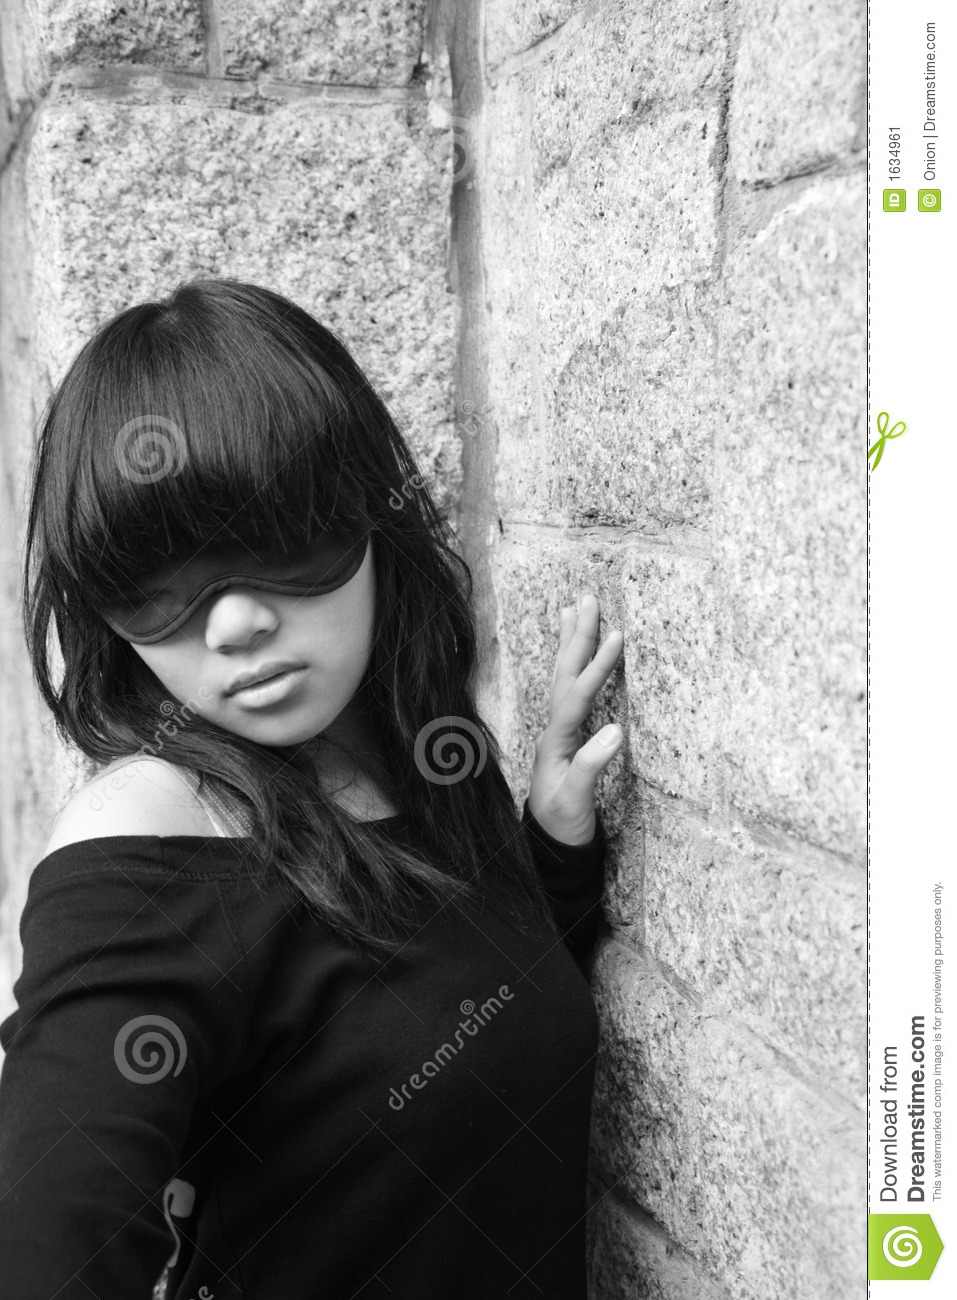 Asian girl wearing a blindfold covering her eyes